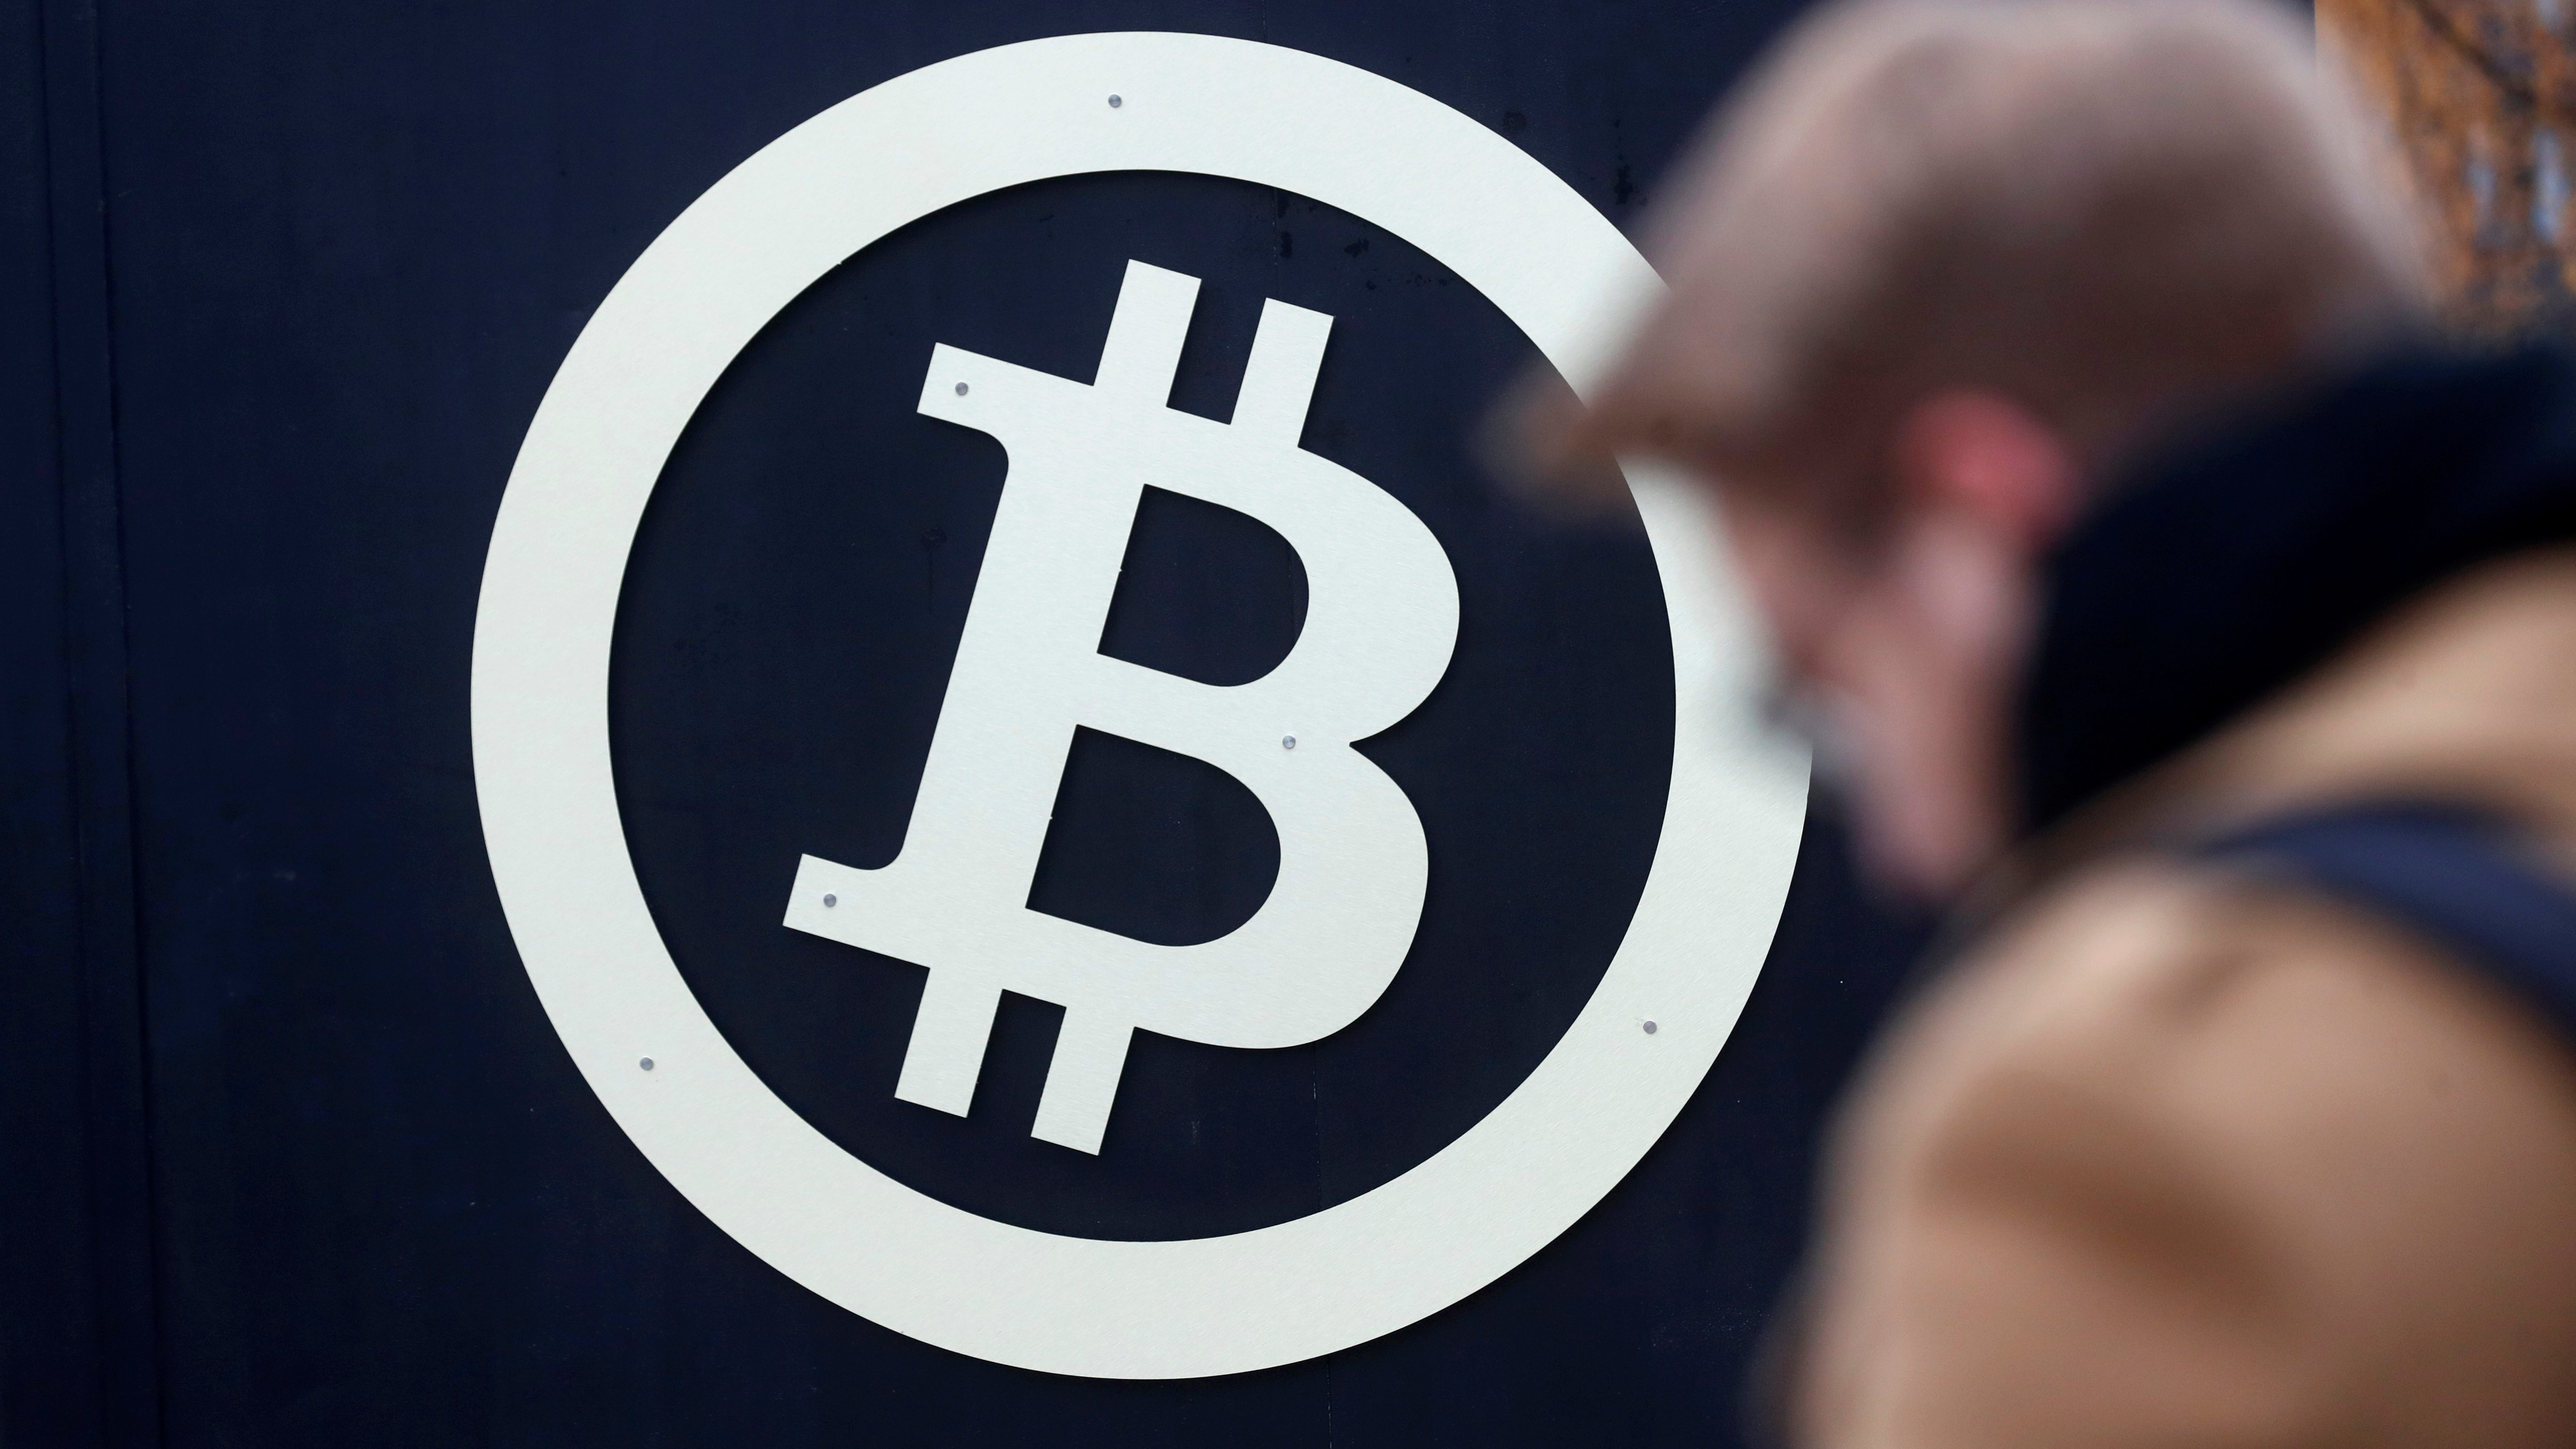 A bitcoin sign is seen during Riga Comm 2017, a business technology and innovation fair in Riga, Latvia November 9, 2017.